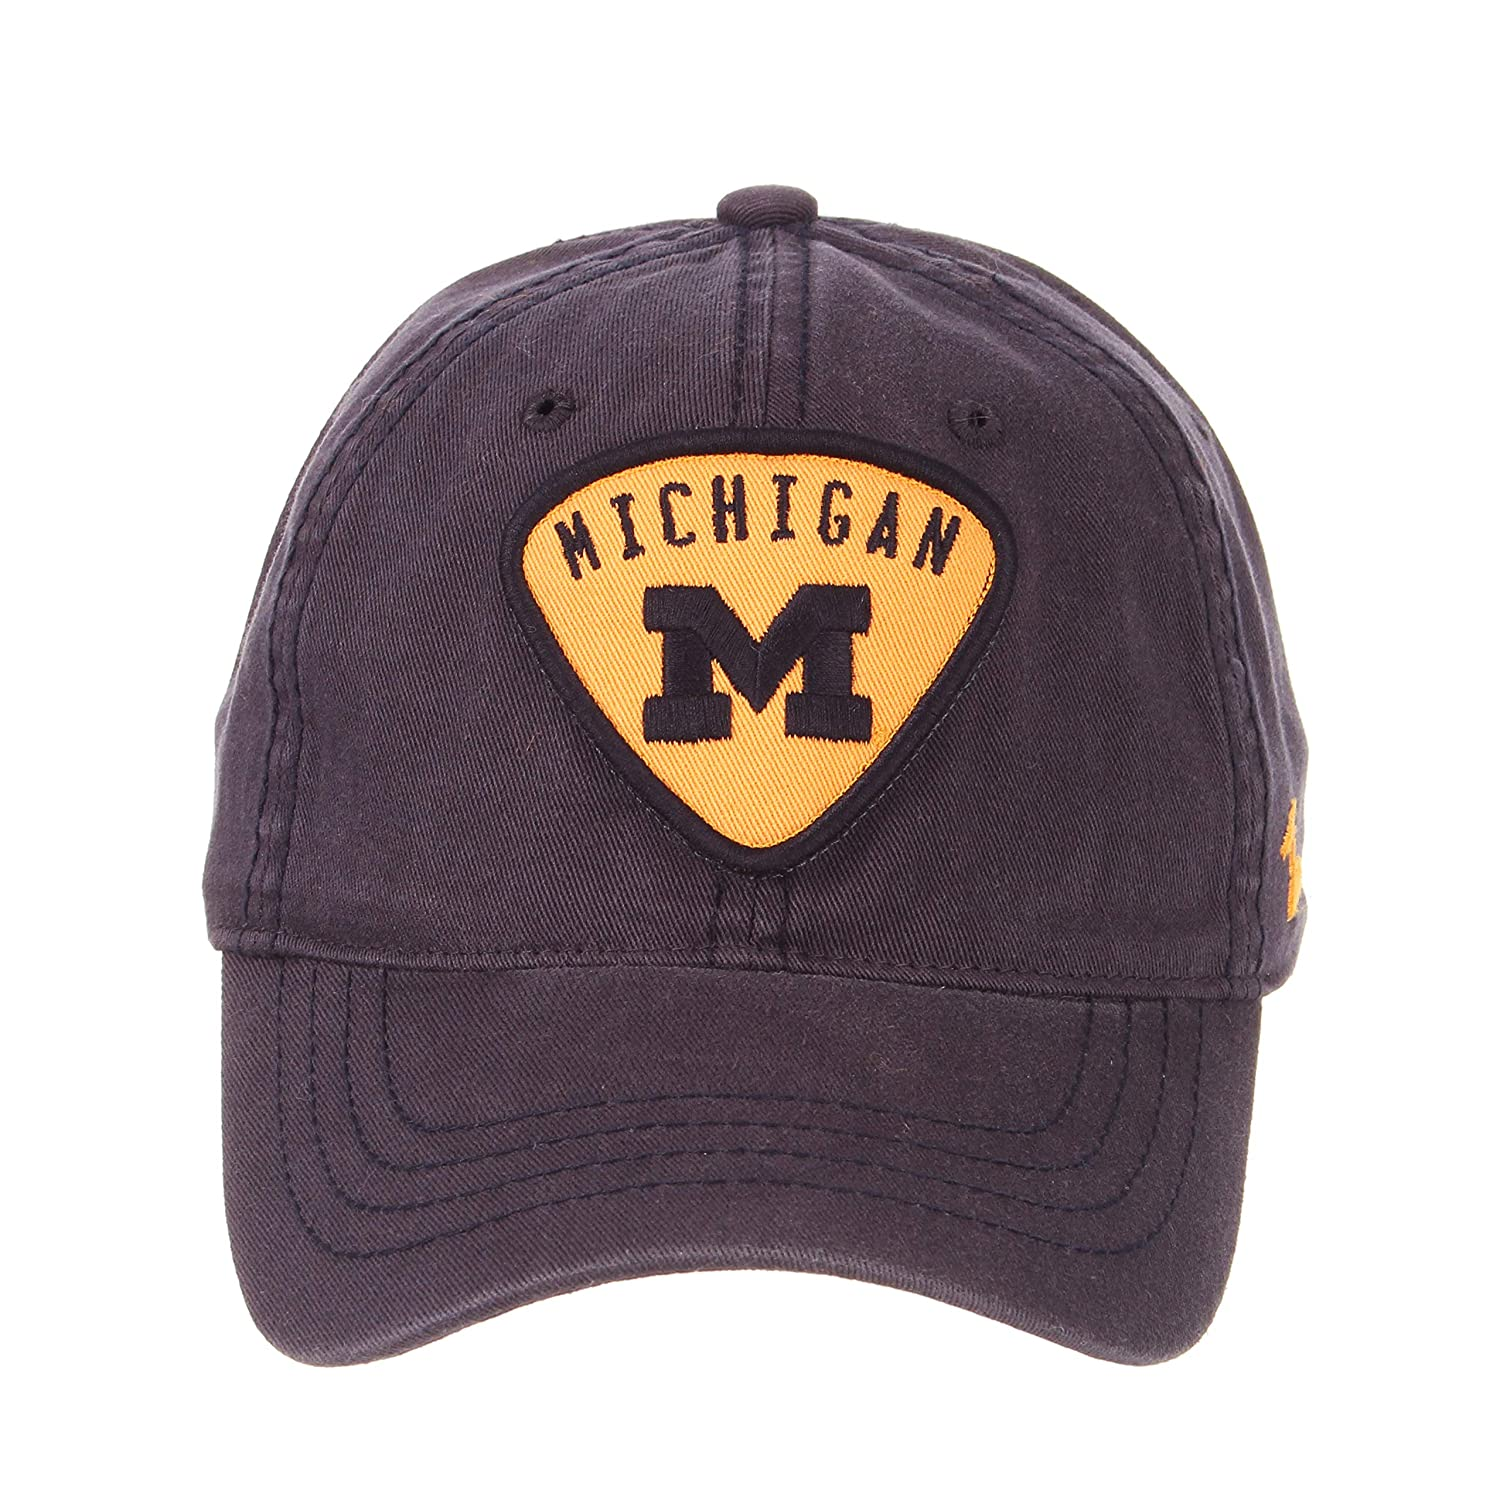 separation shoes 22e31 0f88d Amazon.com   Michigan Wolverines Official NCAA Strummer Adjustable Hat Cap  by Zephyr 750452   Sports   Outdoors